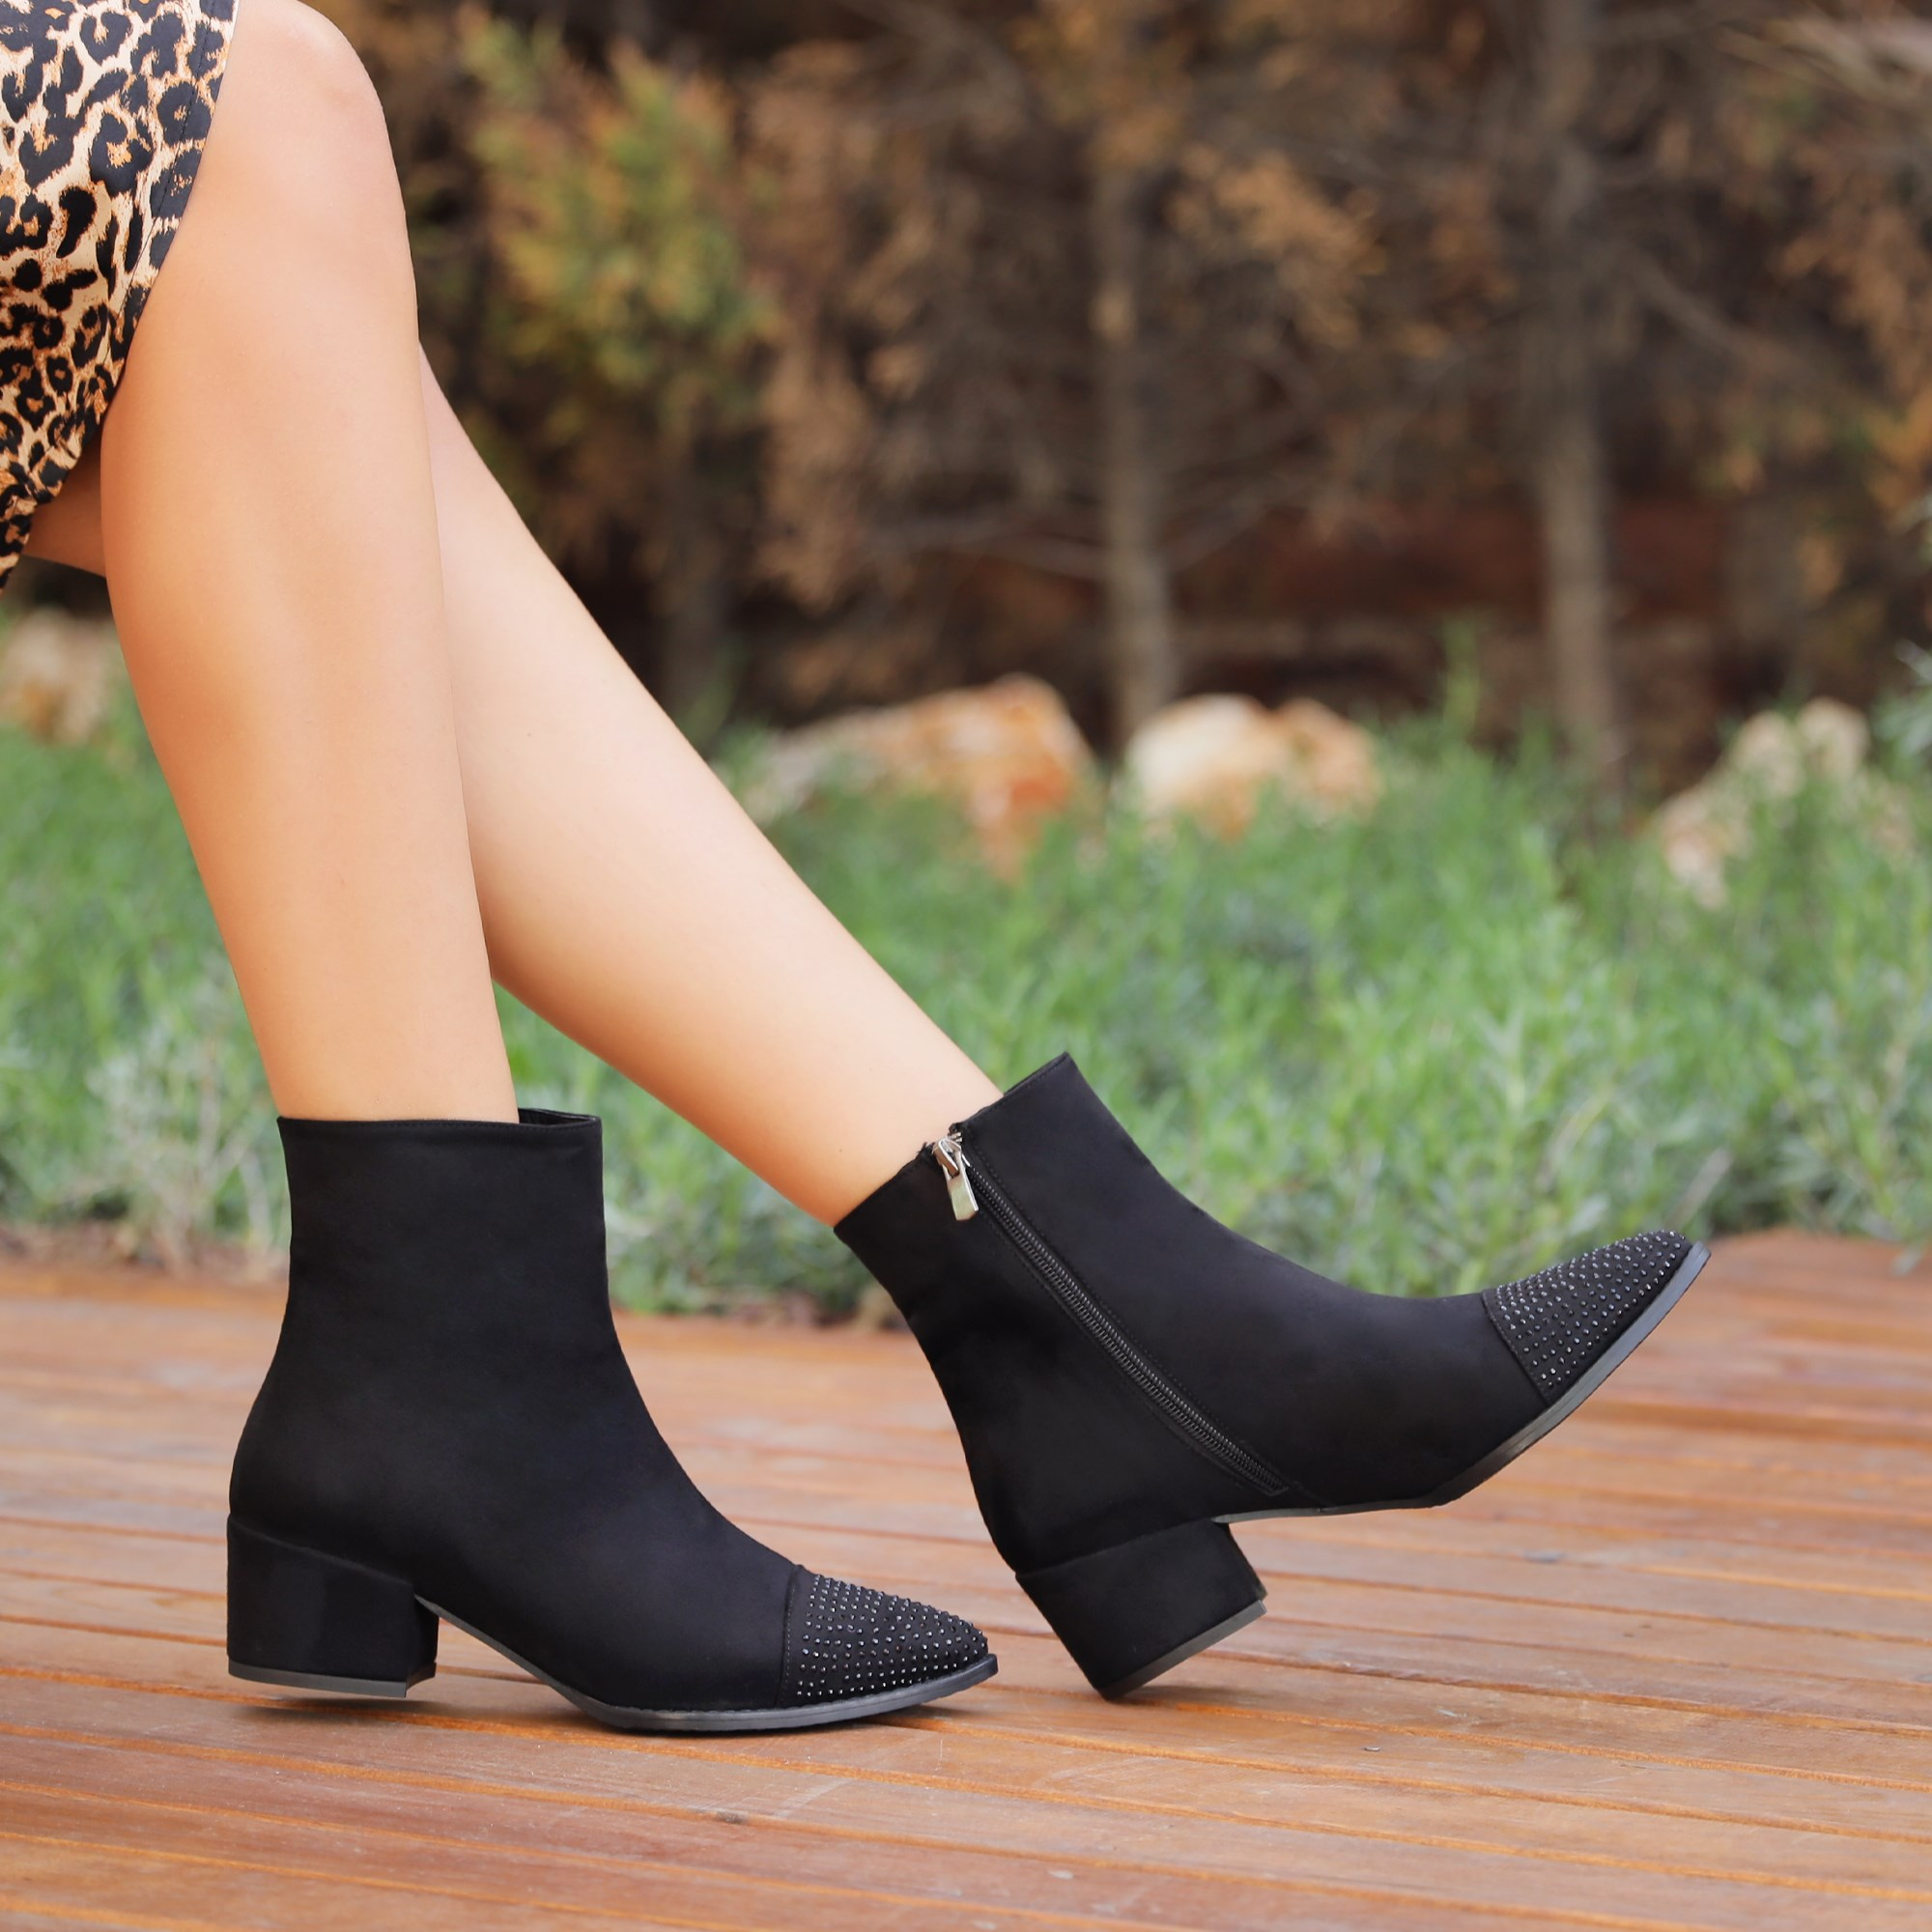 Cardboard Black Stone Thick Heeled Boots